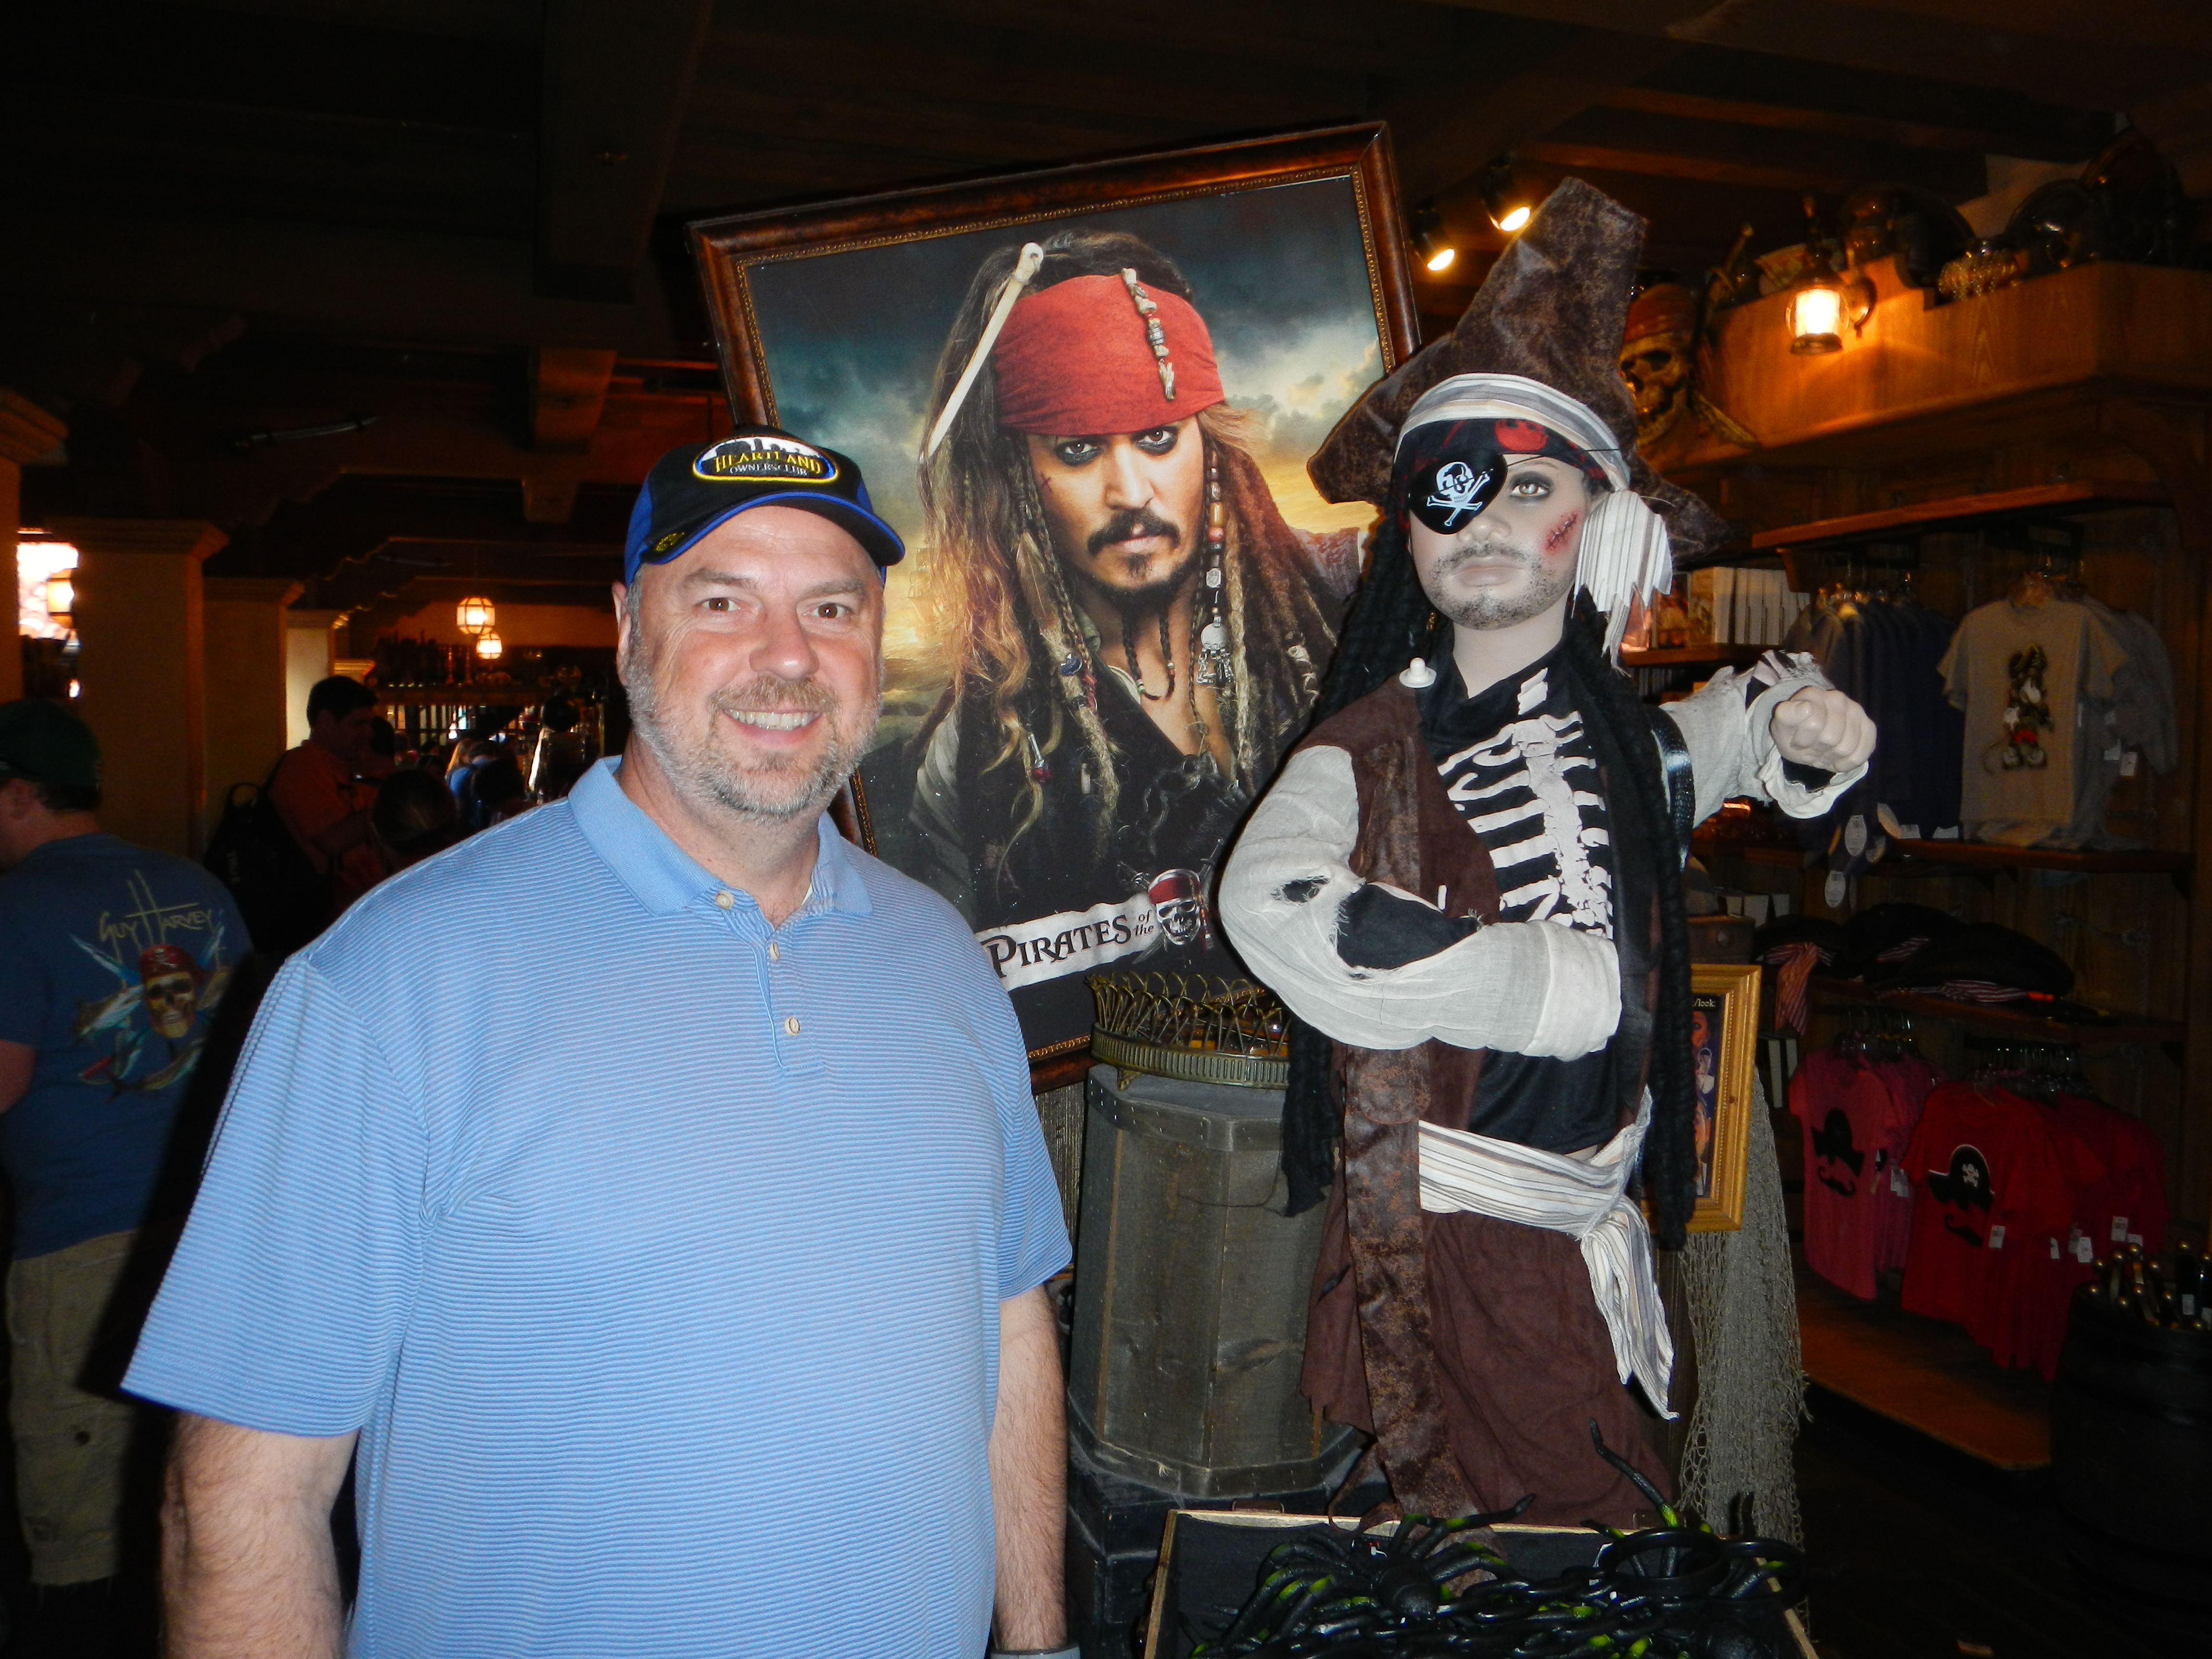 Jim at Pirates of the Caribbean